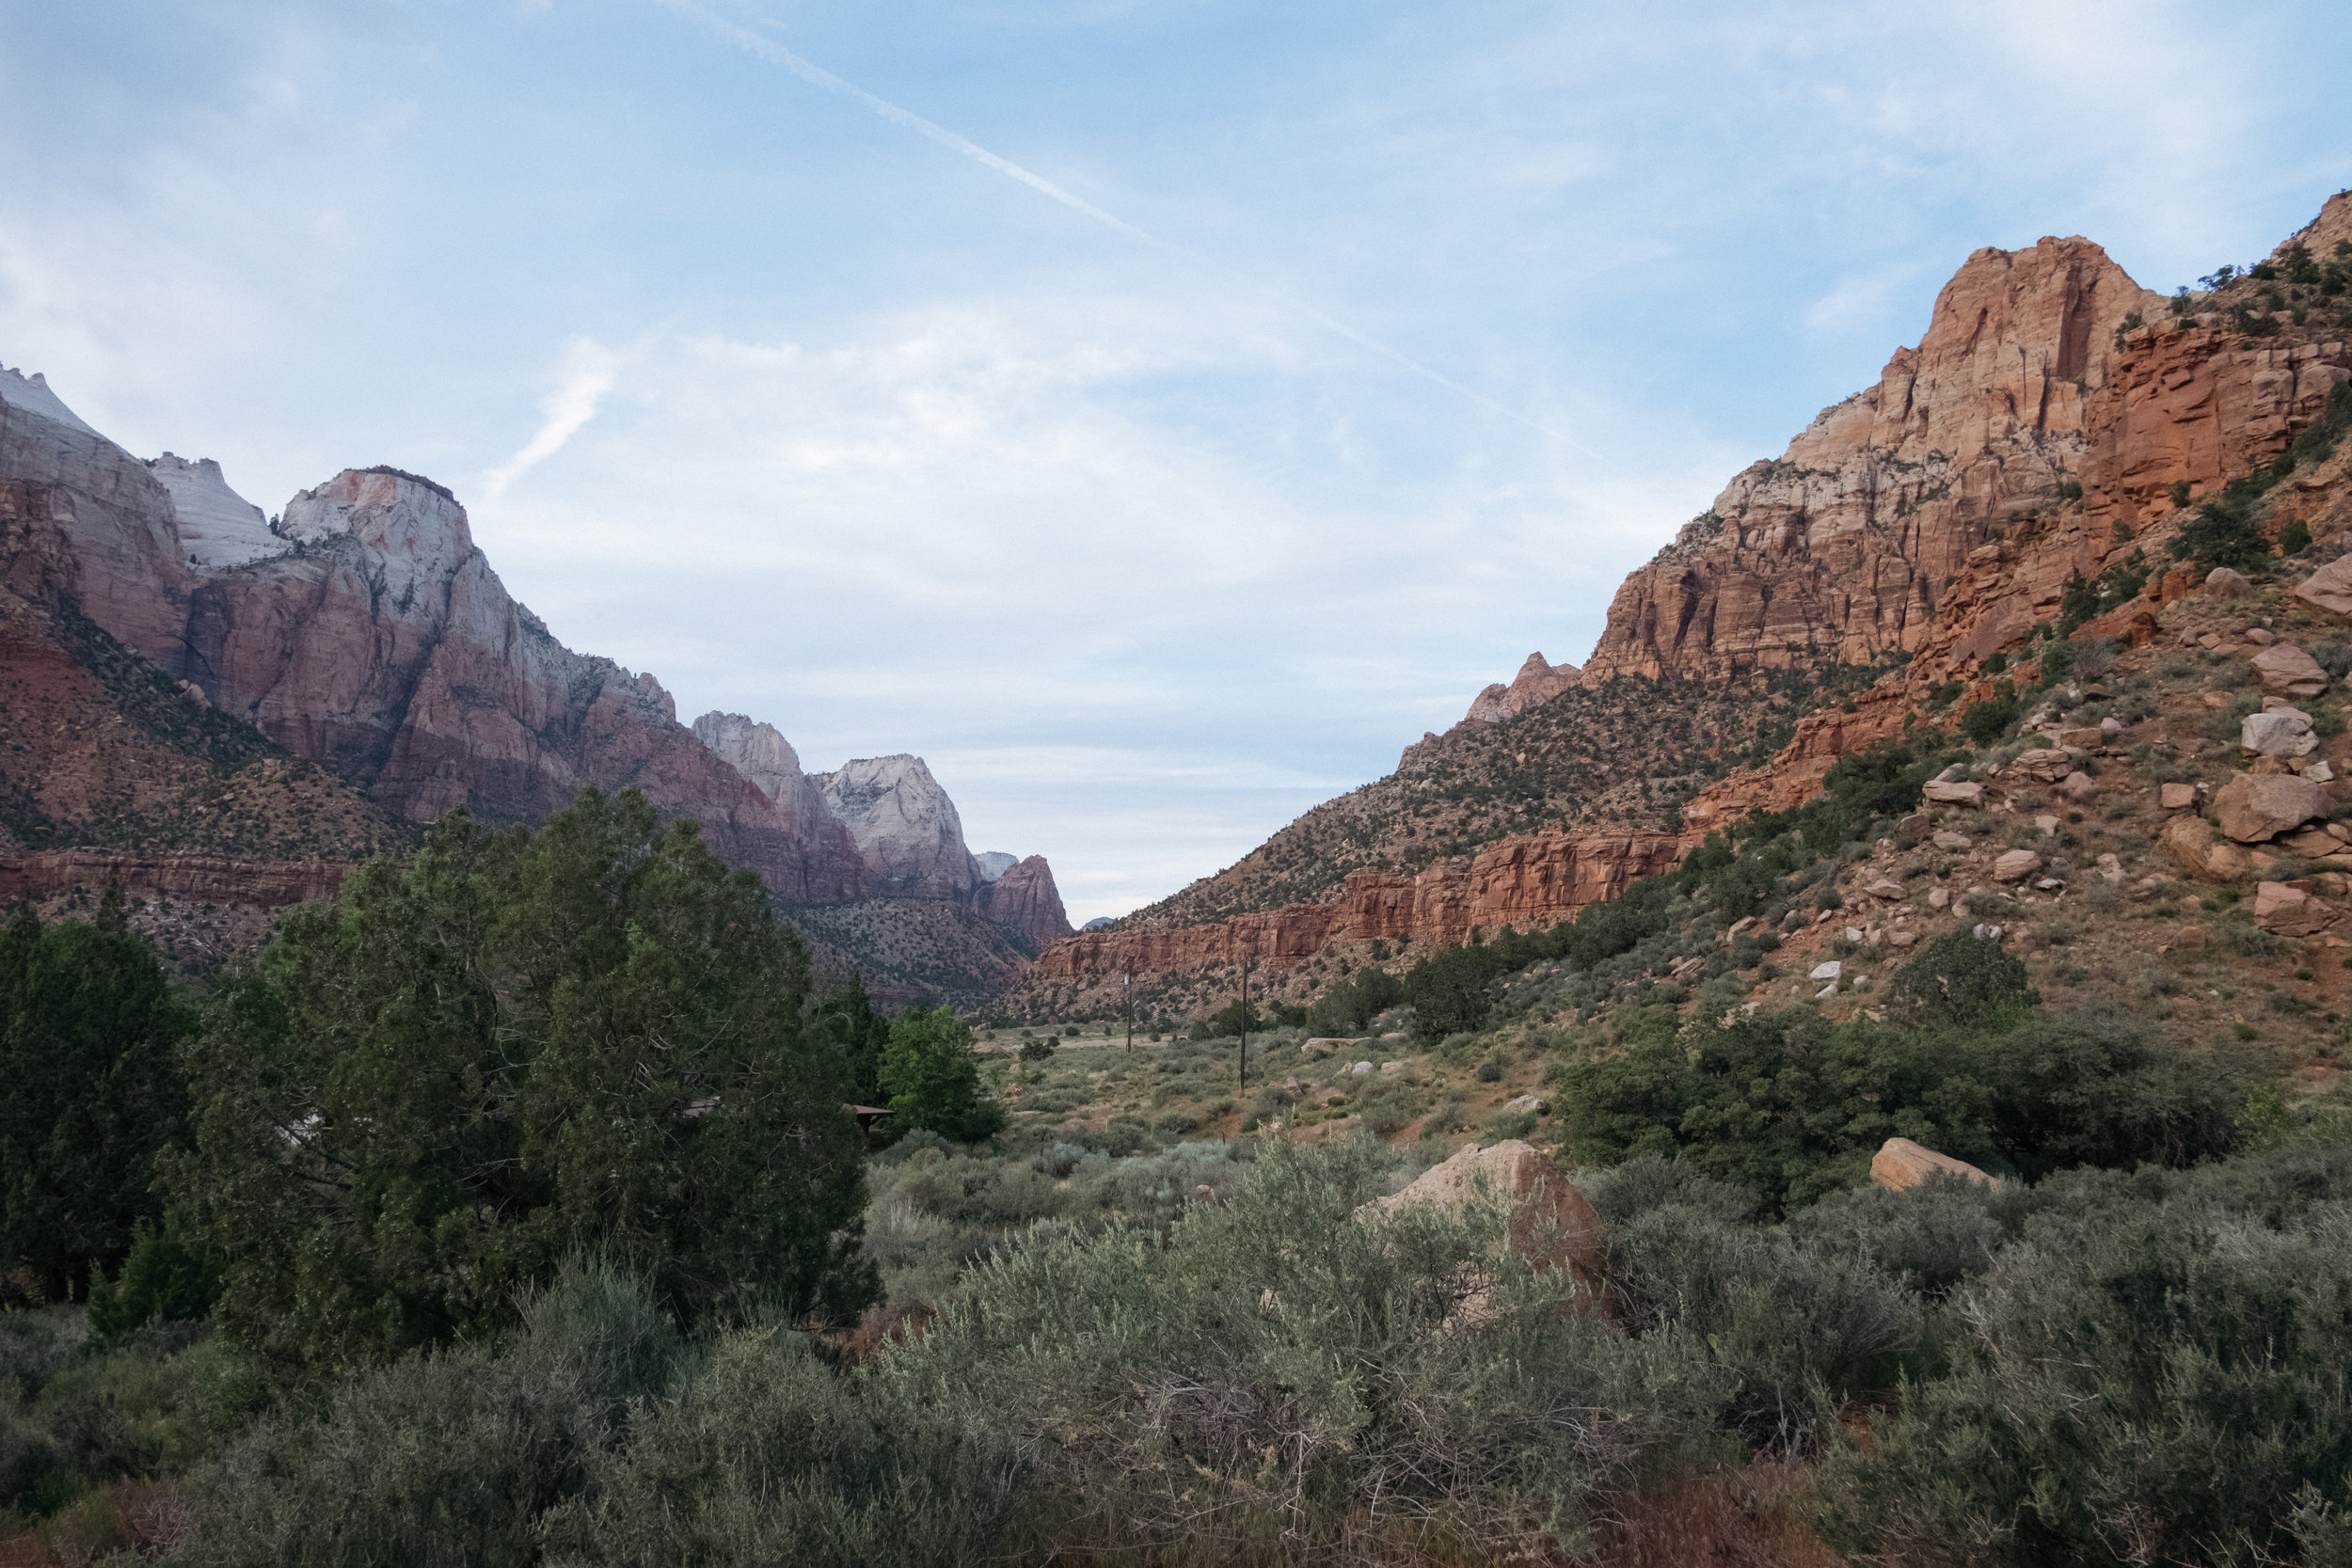 Zion after sunset